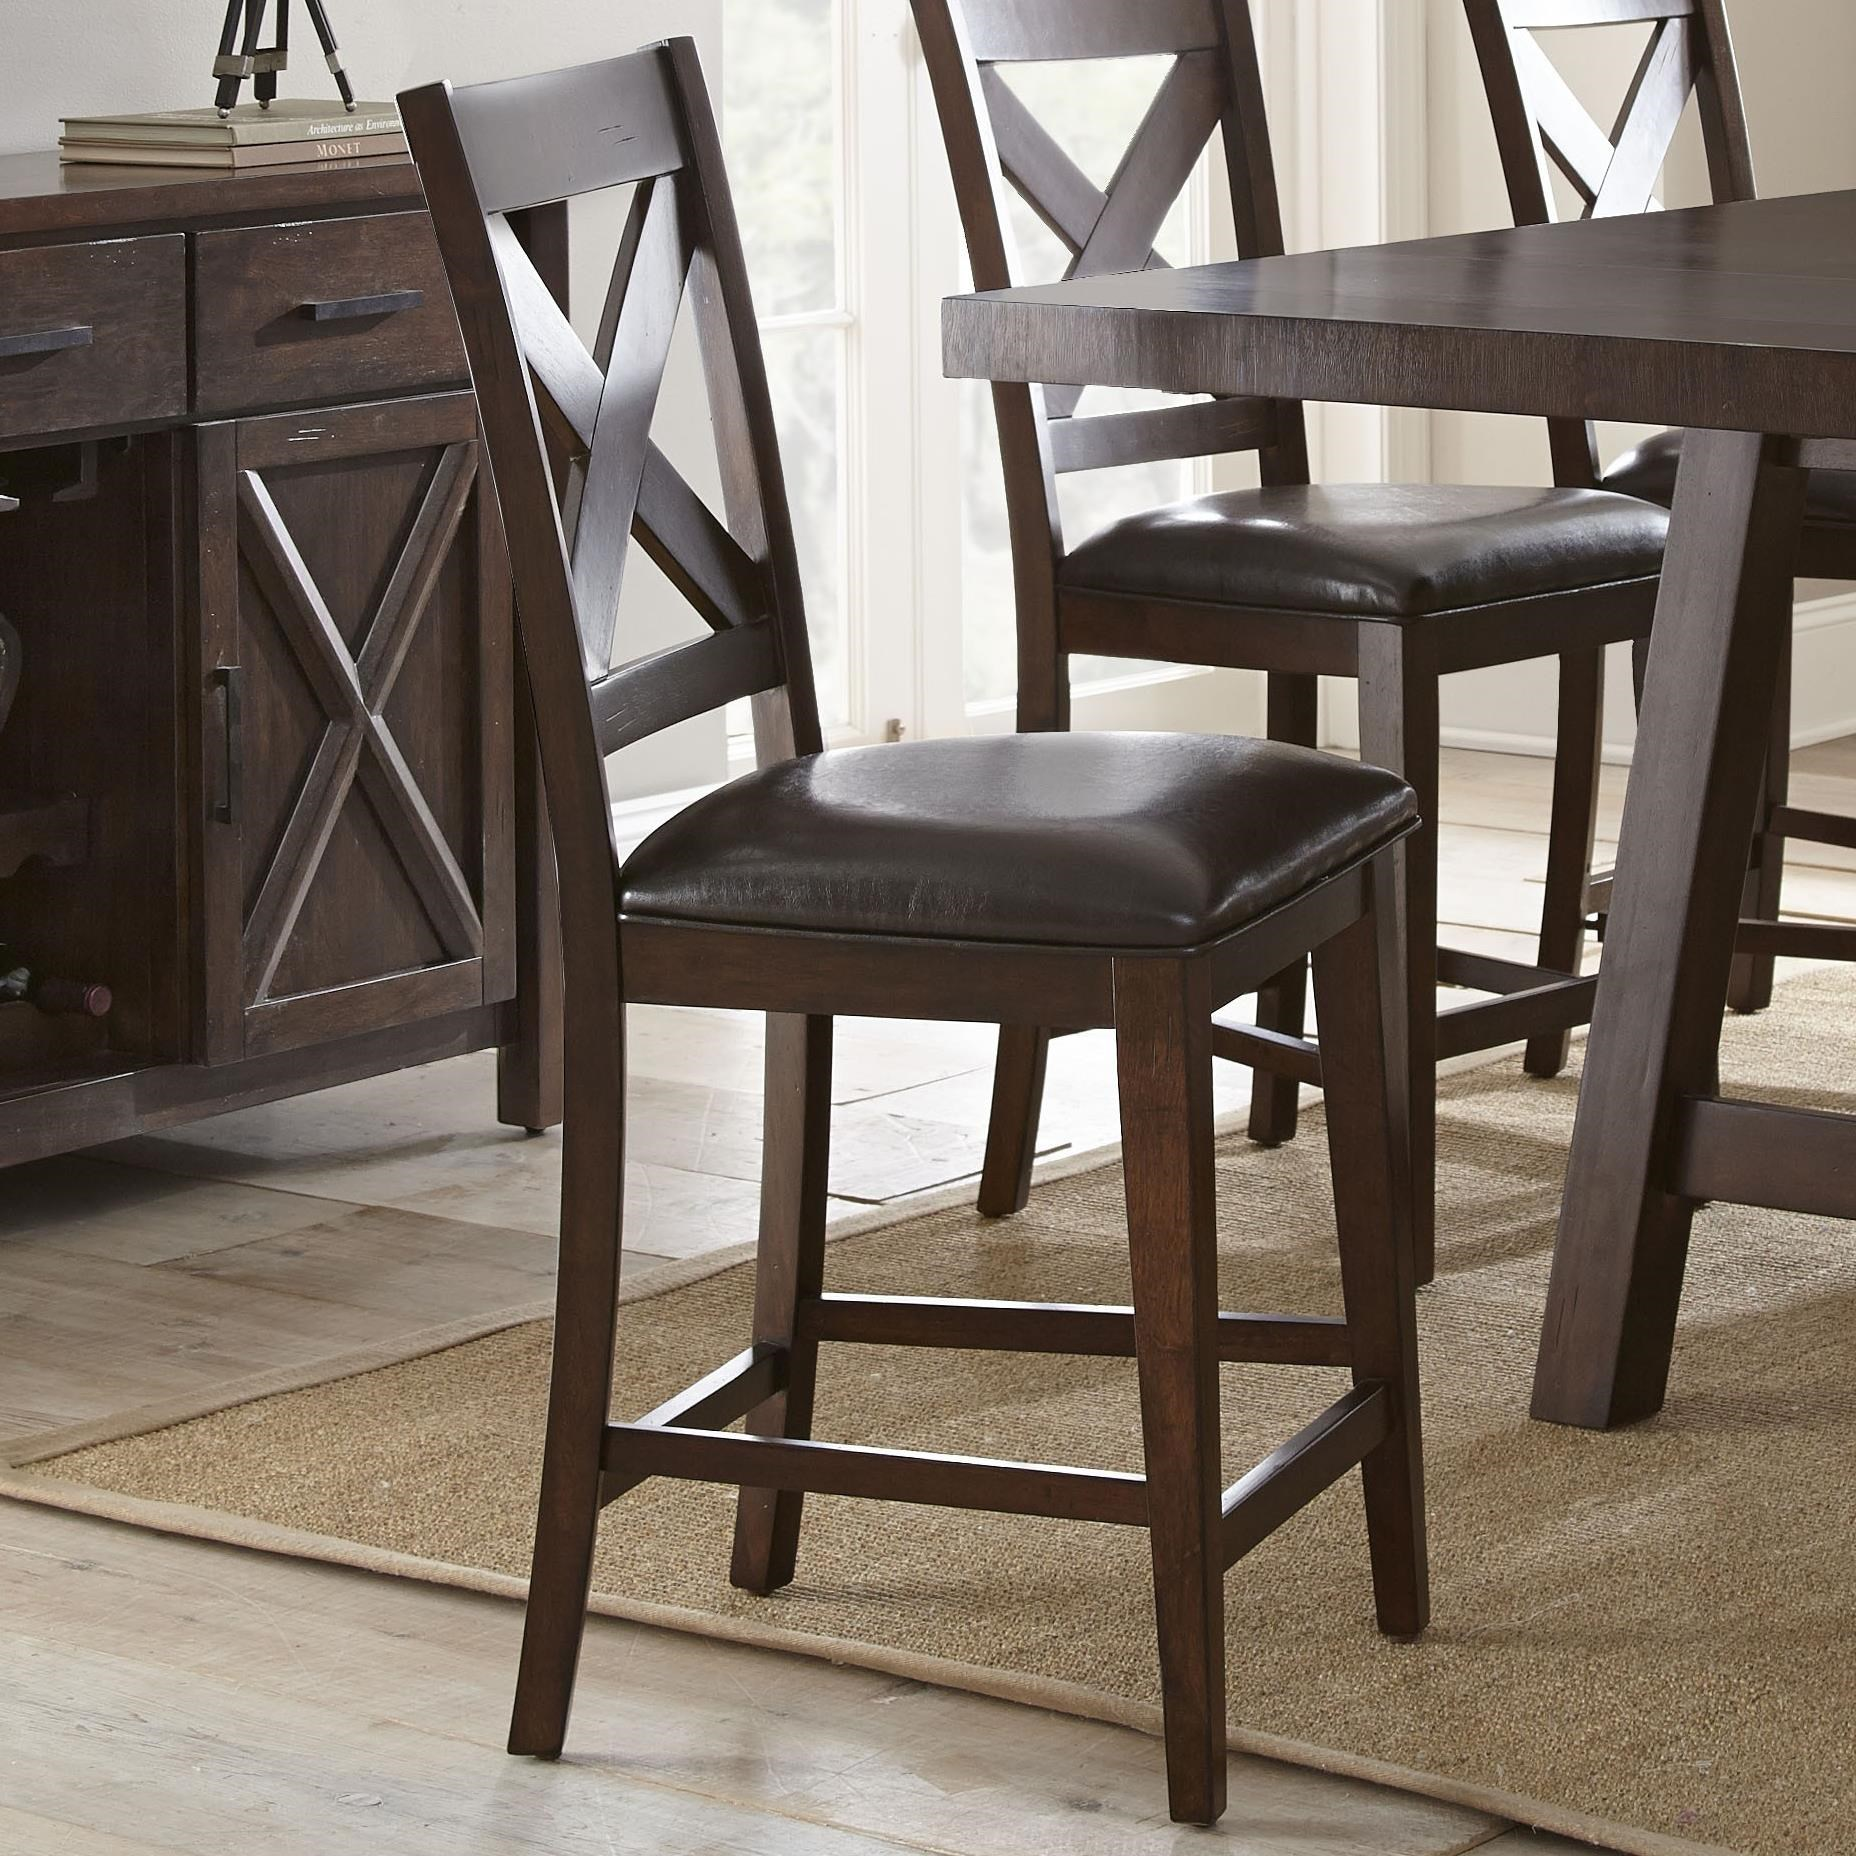 Steve Silver Clapton Counter Chair with X Back and  : claptonct700cc b0jpgscalebothampwidth500ampheight500ampfsharpen25ampdown from www.walkersfurniture.com size 500 x 500 jpeg 69kB